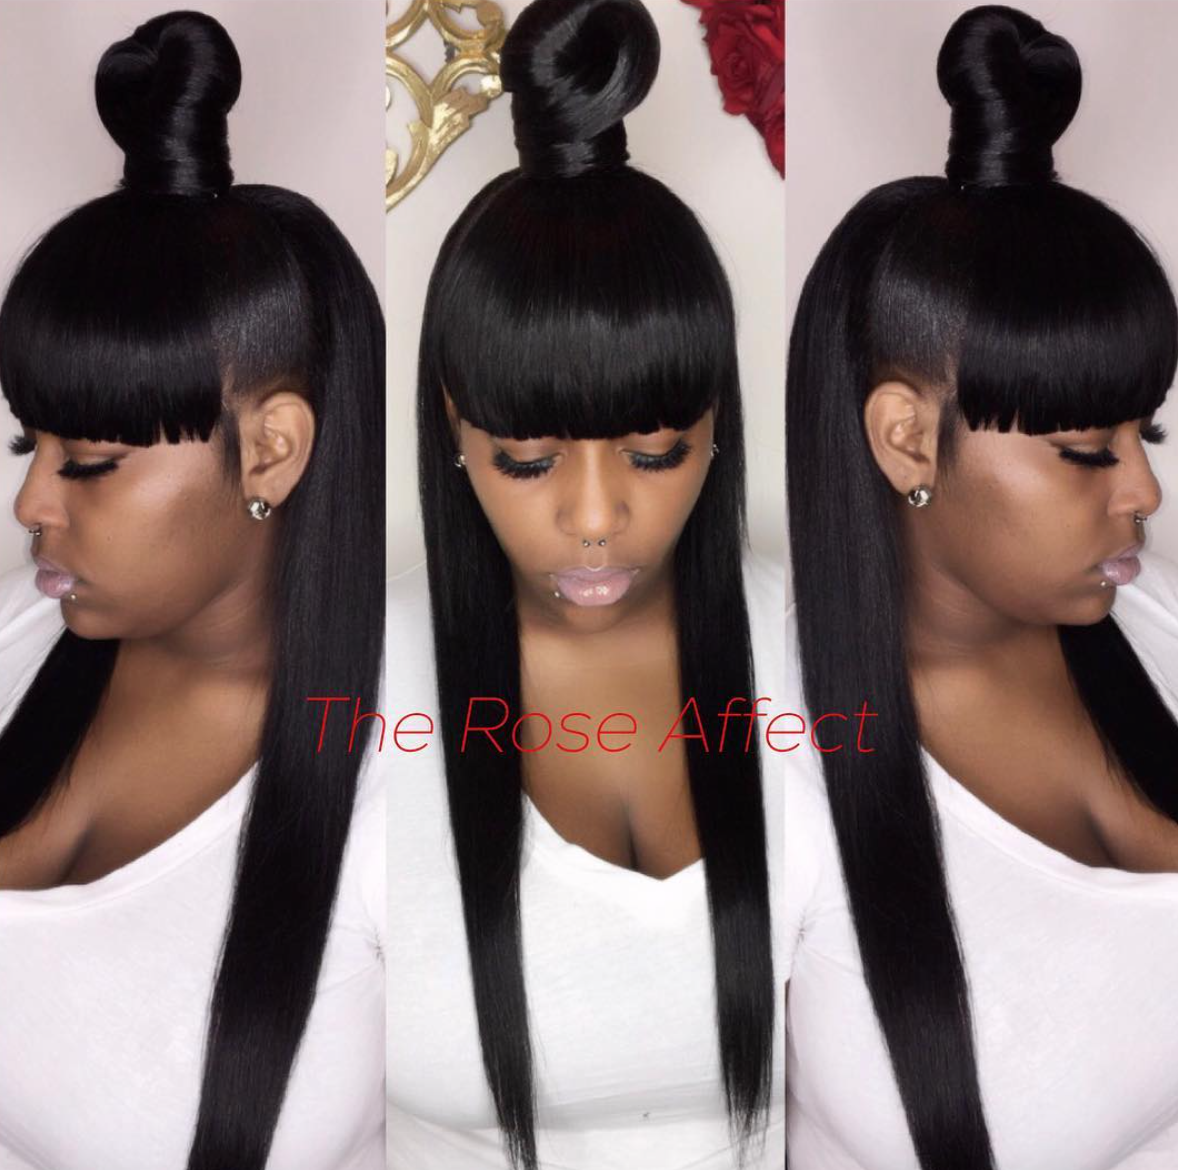 pin by deedra cooper on styles in 2019 | ponytail hairstyles